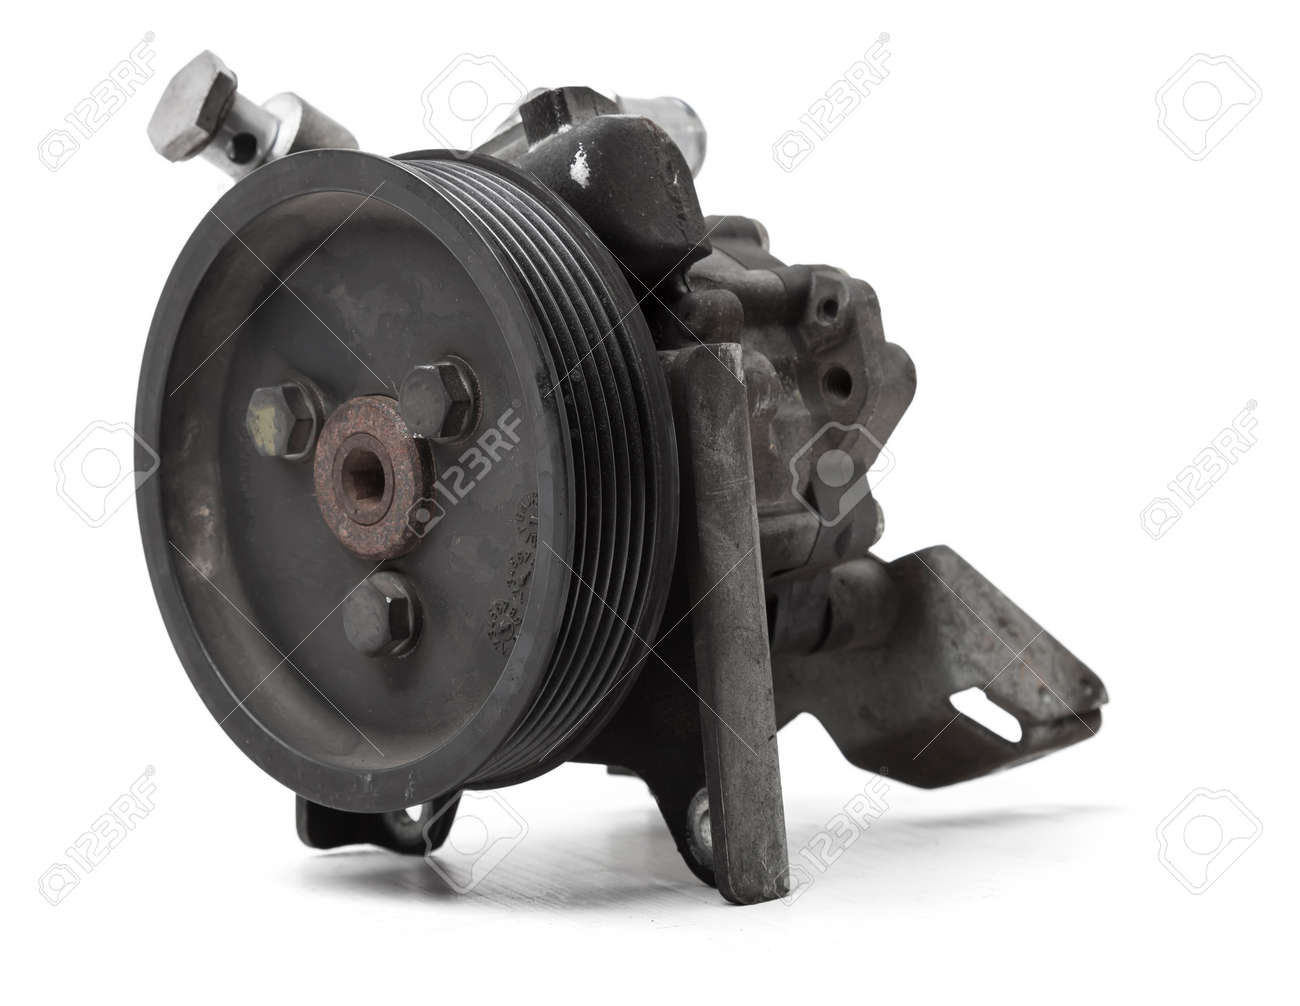 Engine attachments - power steering, a pump that pumps oil to the steering rack to facilitate steering wheel rotation. junkyard Vehicle Parts Catalog - 169051388